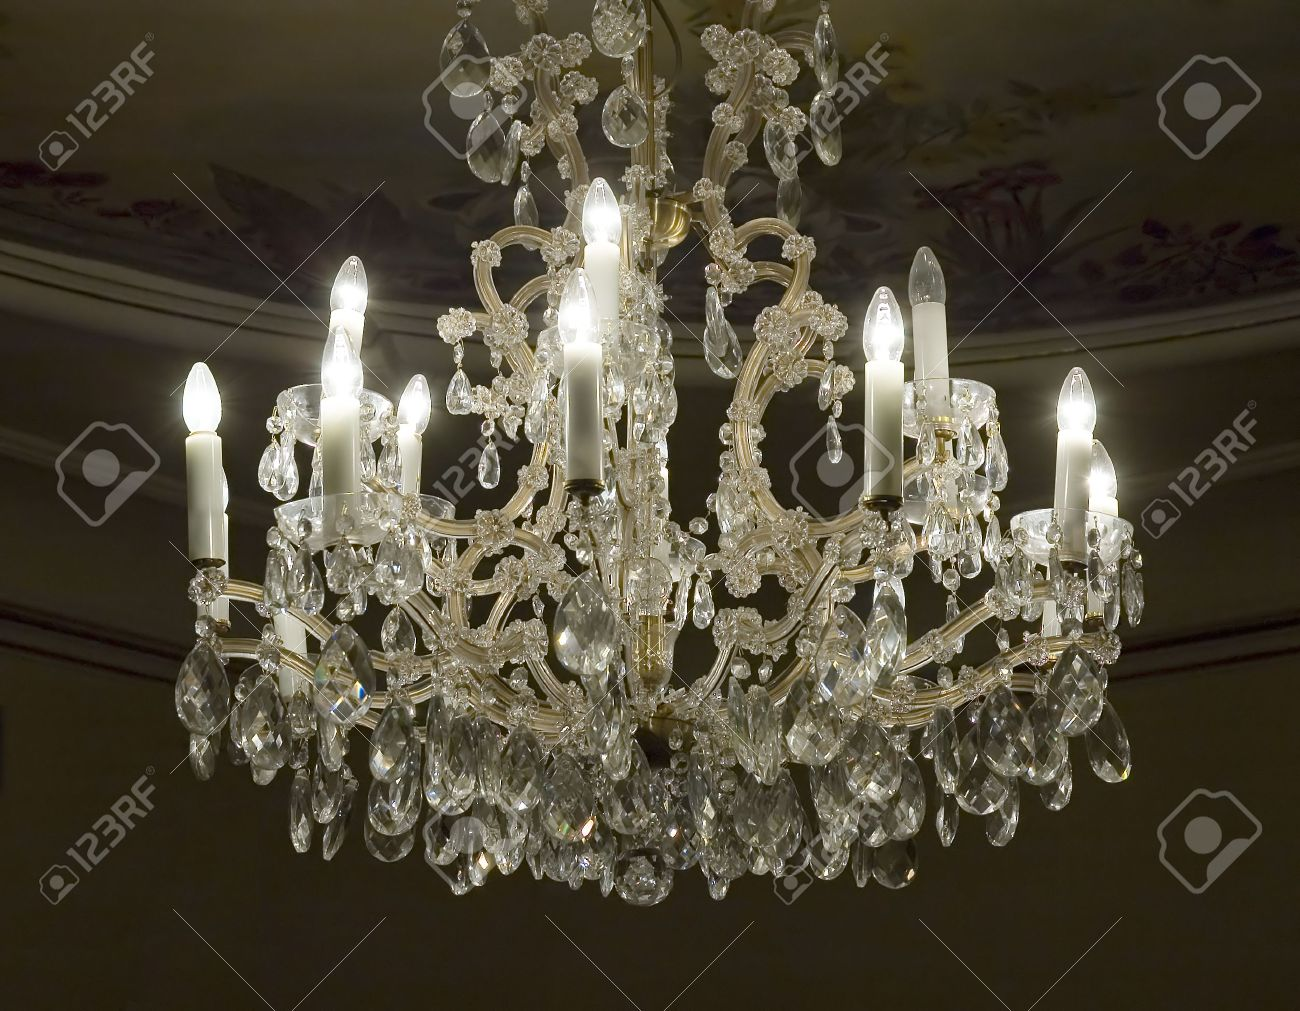 Antique crystal chandelier - Antique Crystal Chandelier Stock Photo, Picture And Royalty Free